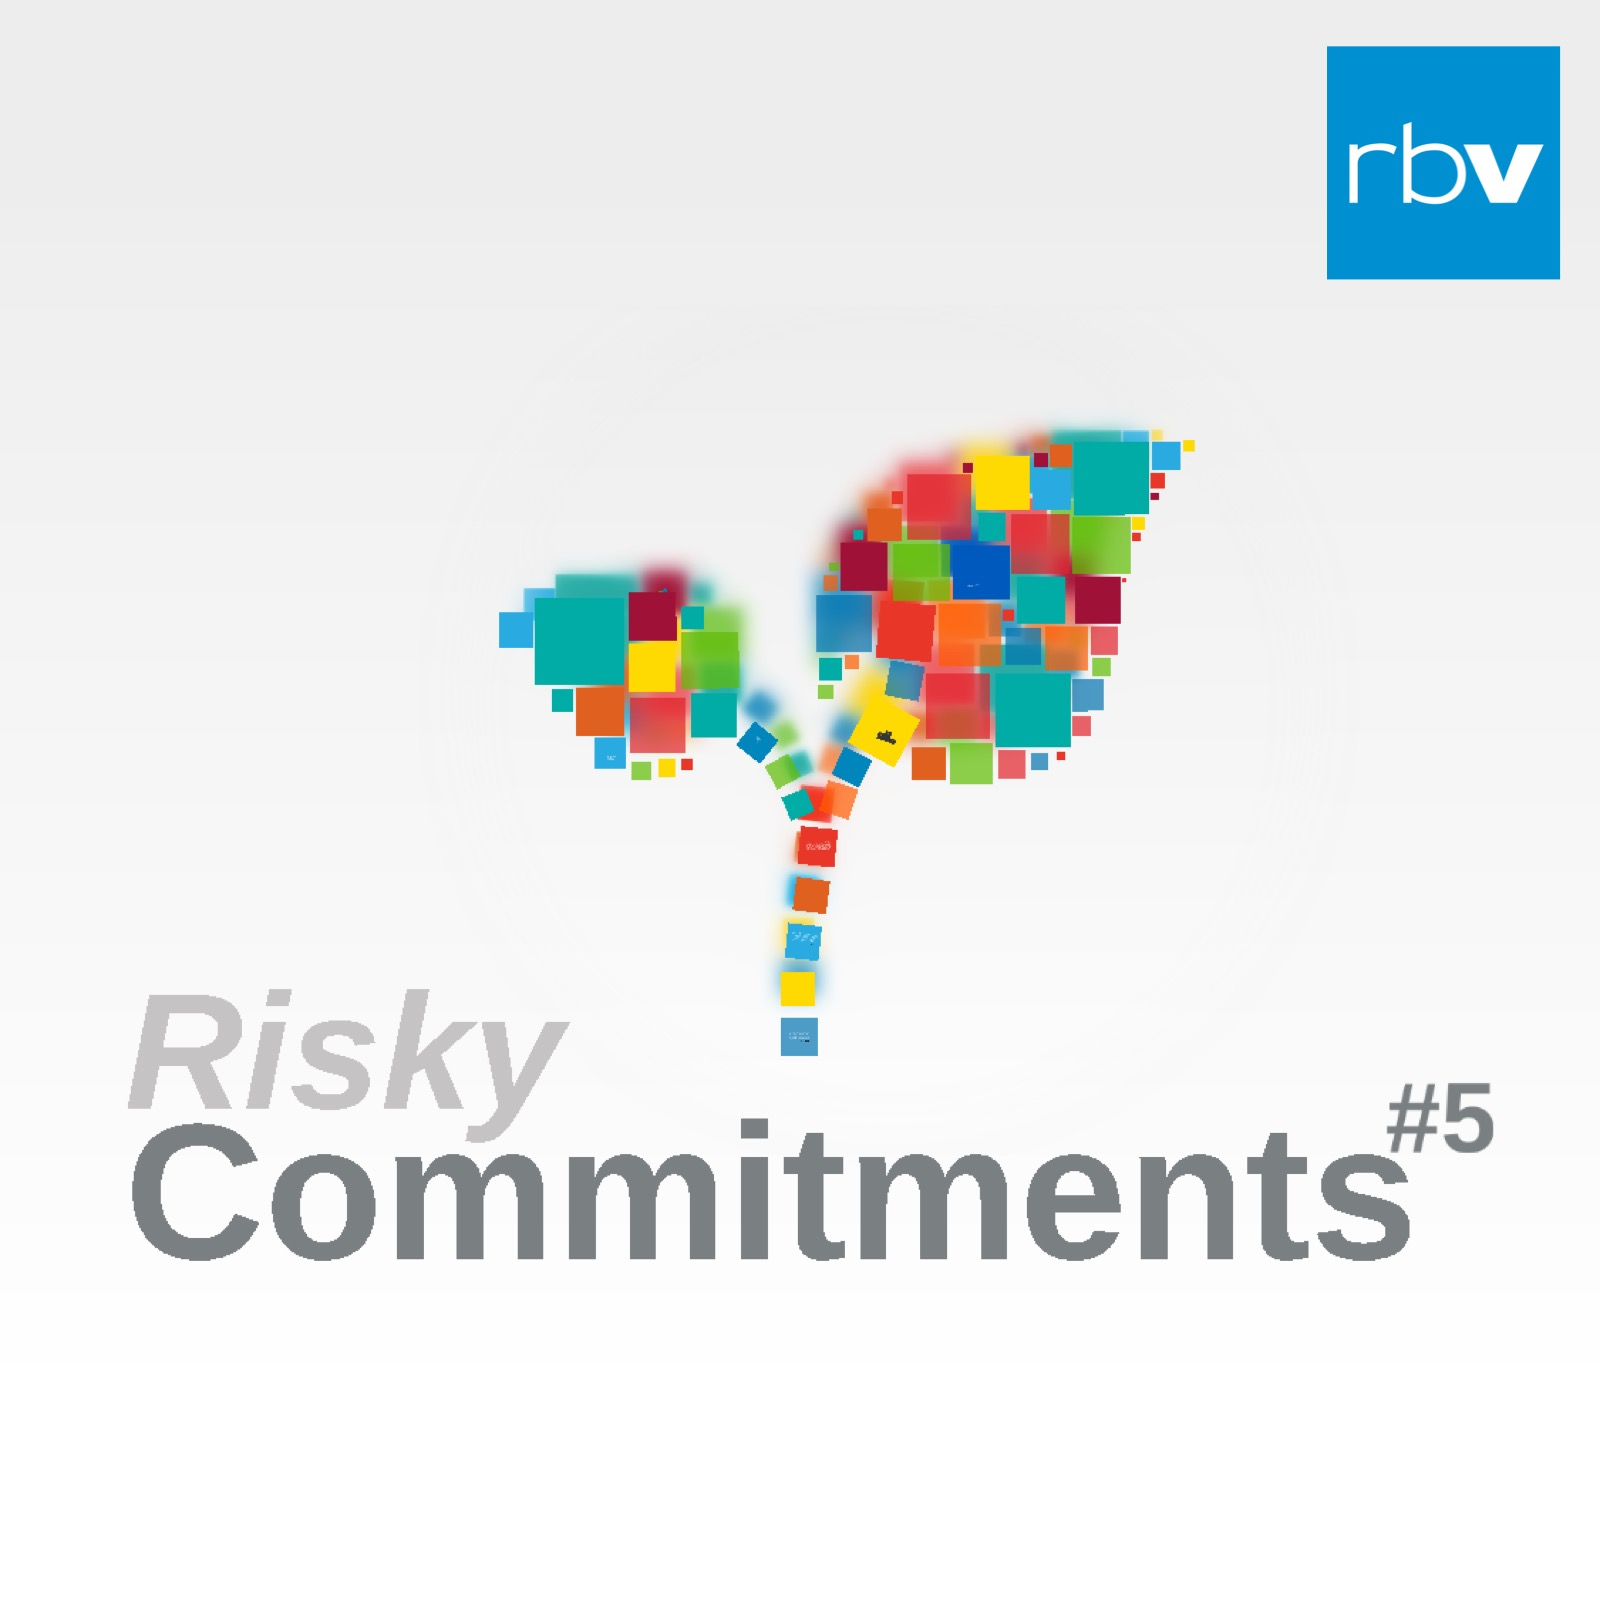 Risky Commitments: Sharing our Faith